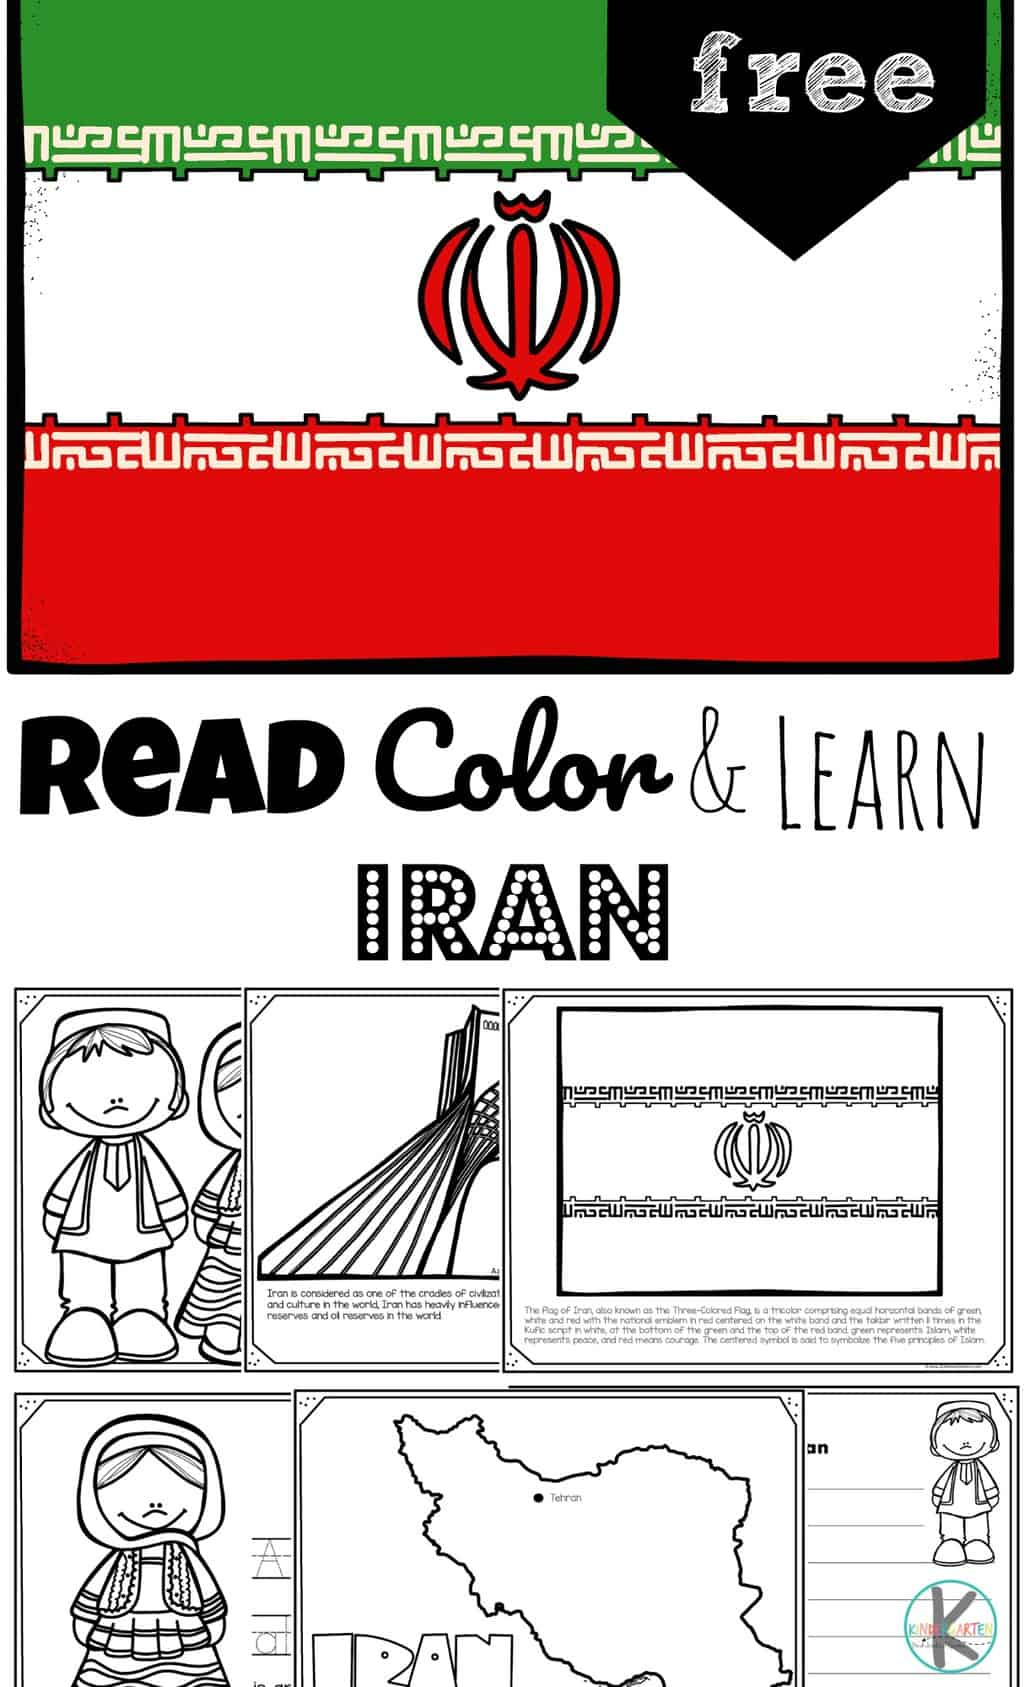 Free Read Color And Learn About Iran